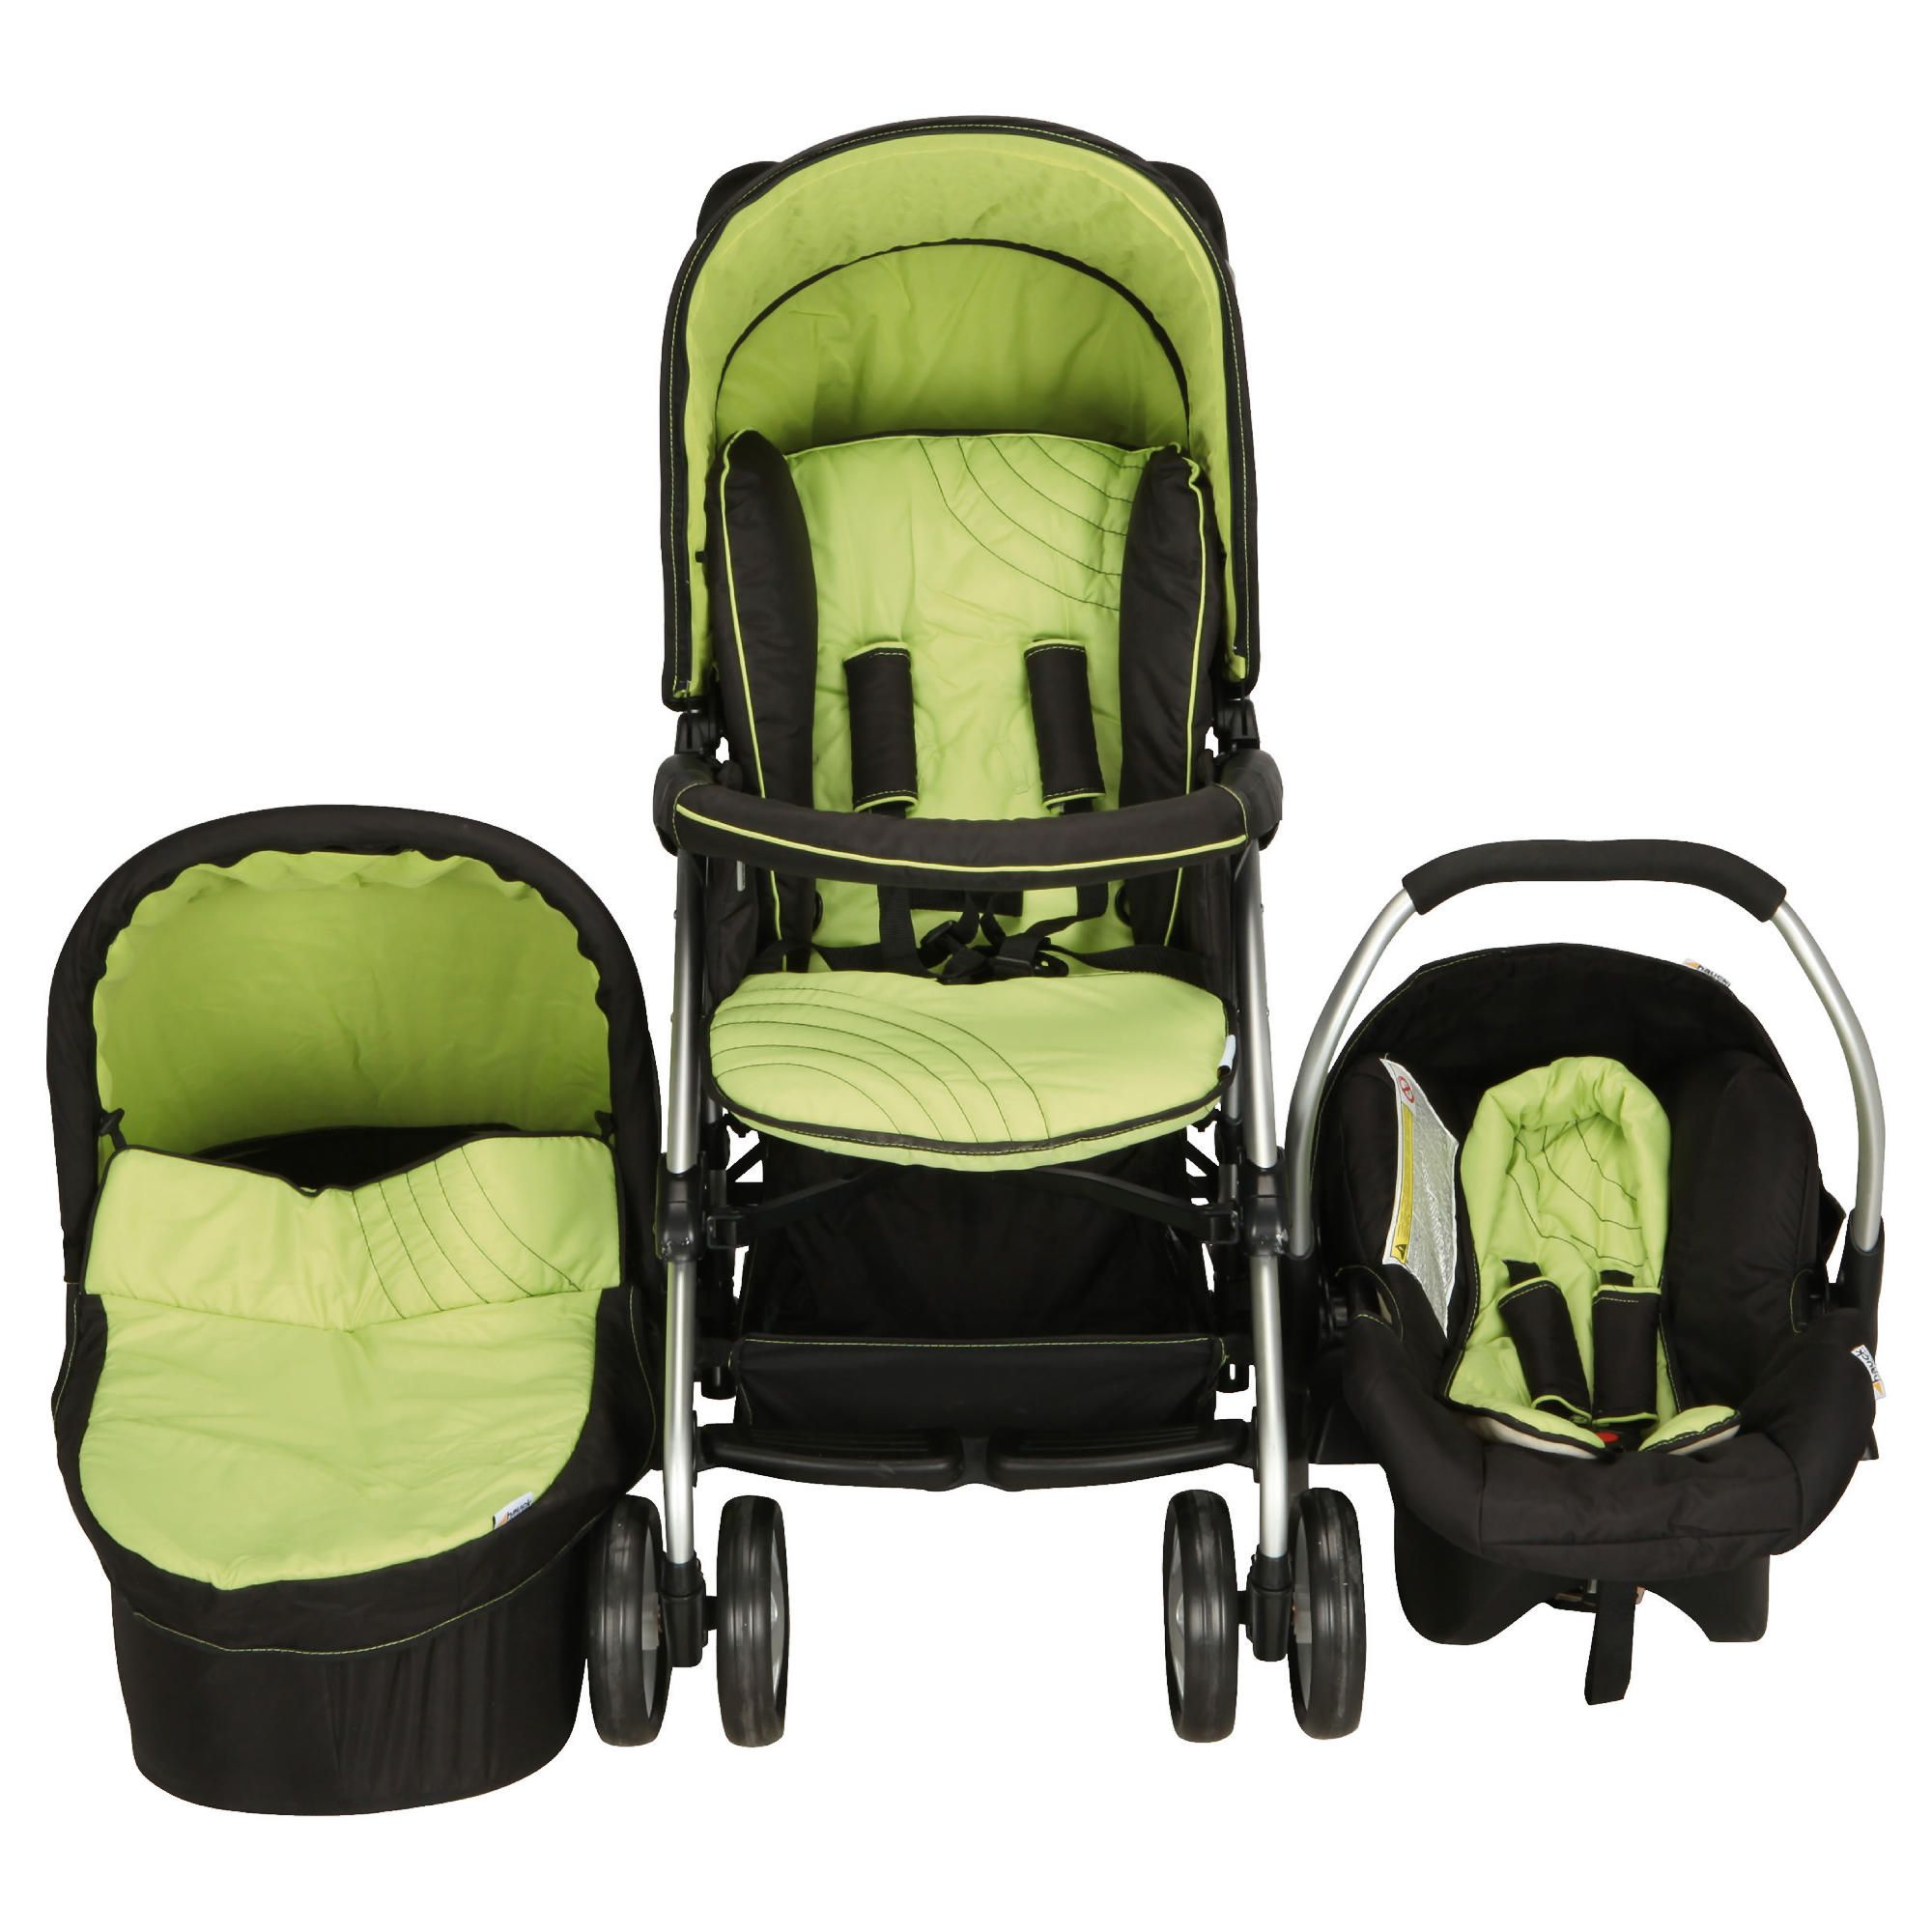 Hauck Condor Trioset Pushchair Travel System, Lime at Tescos Direct